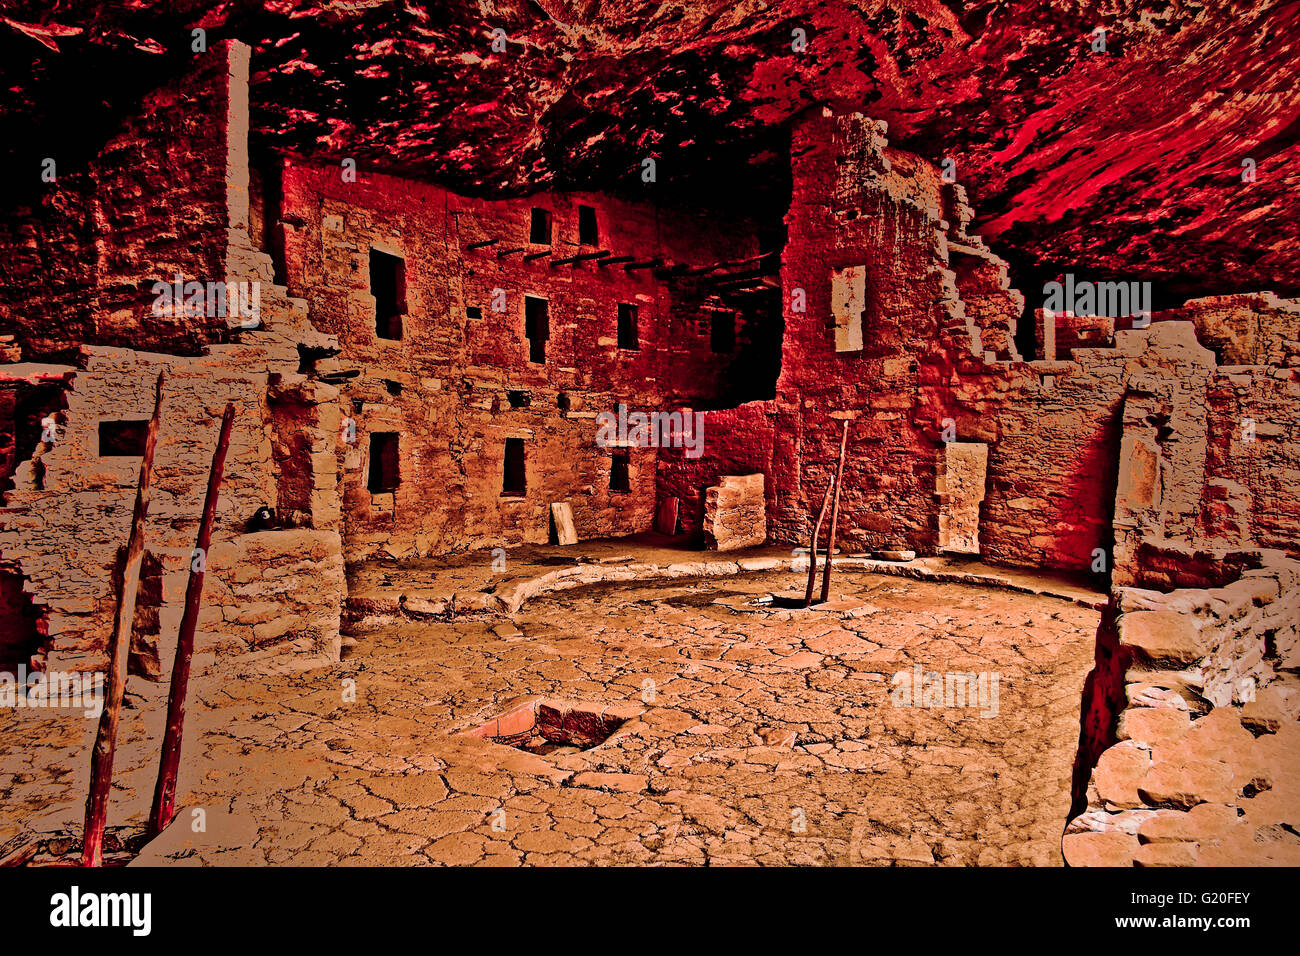 Cliff Dwellings of Mesa Verde National Park preserves, spectacular reminder of this ancient culture of Anasazi. - Stock Image